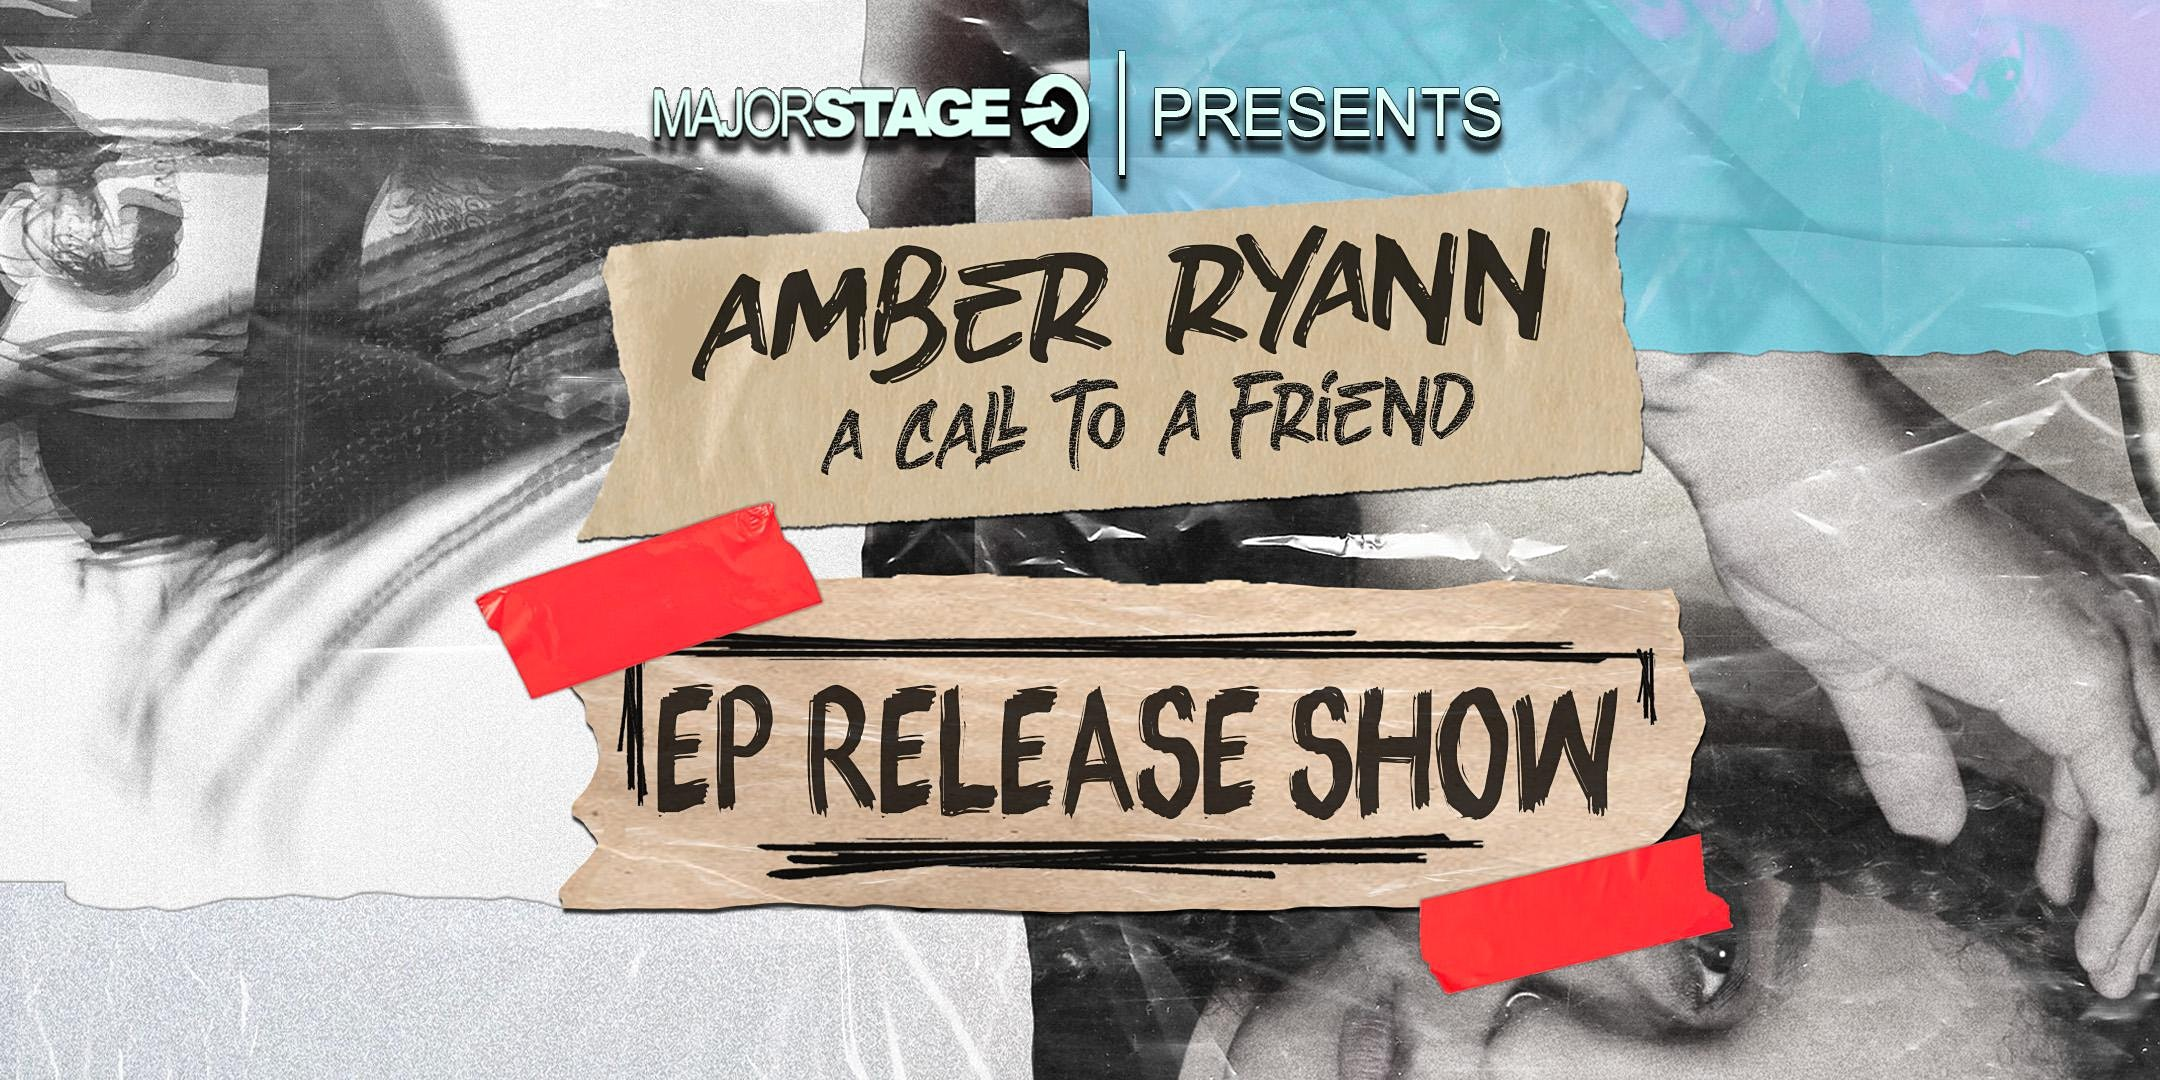 MajorStage presents Amber Ryann (EP Release Show)